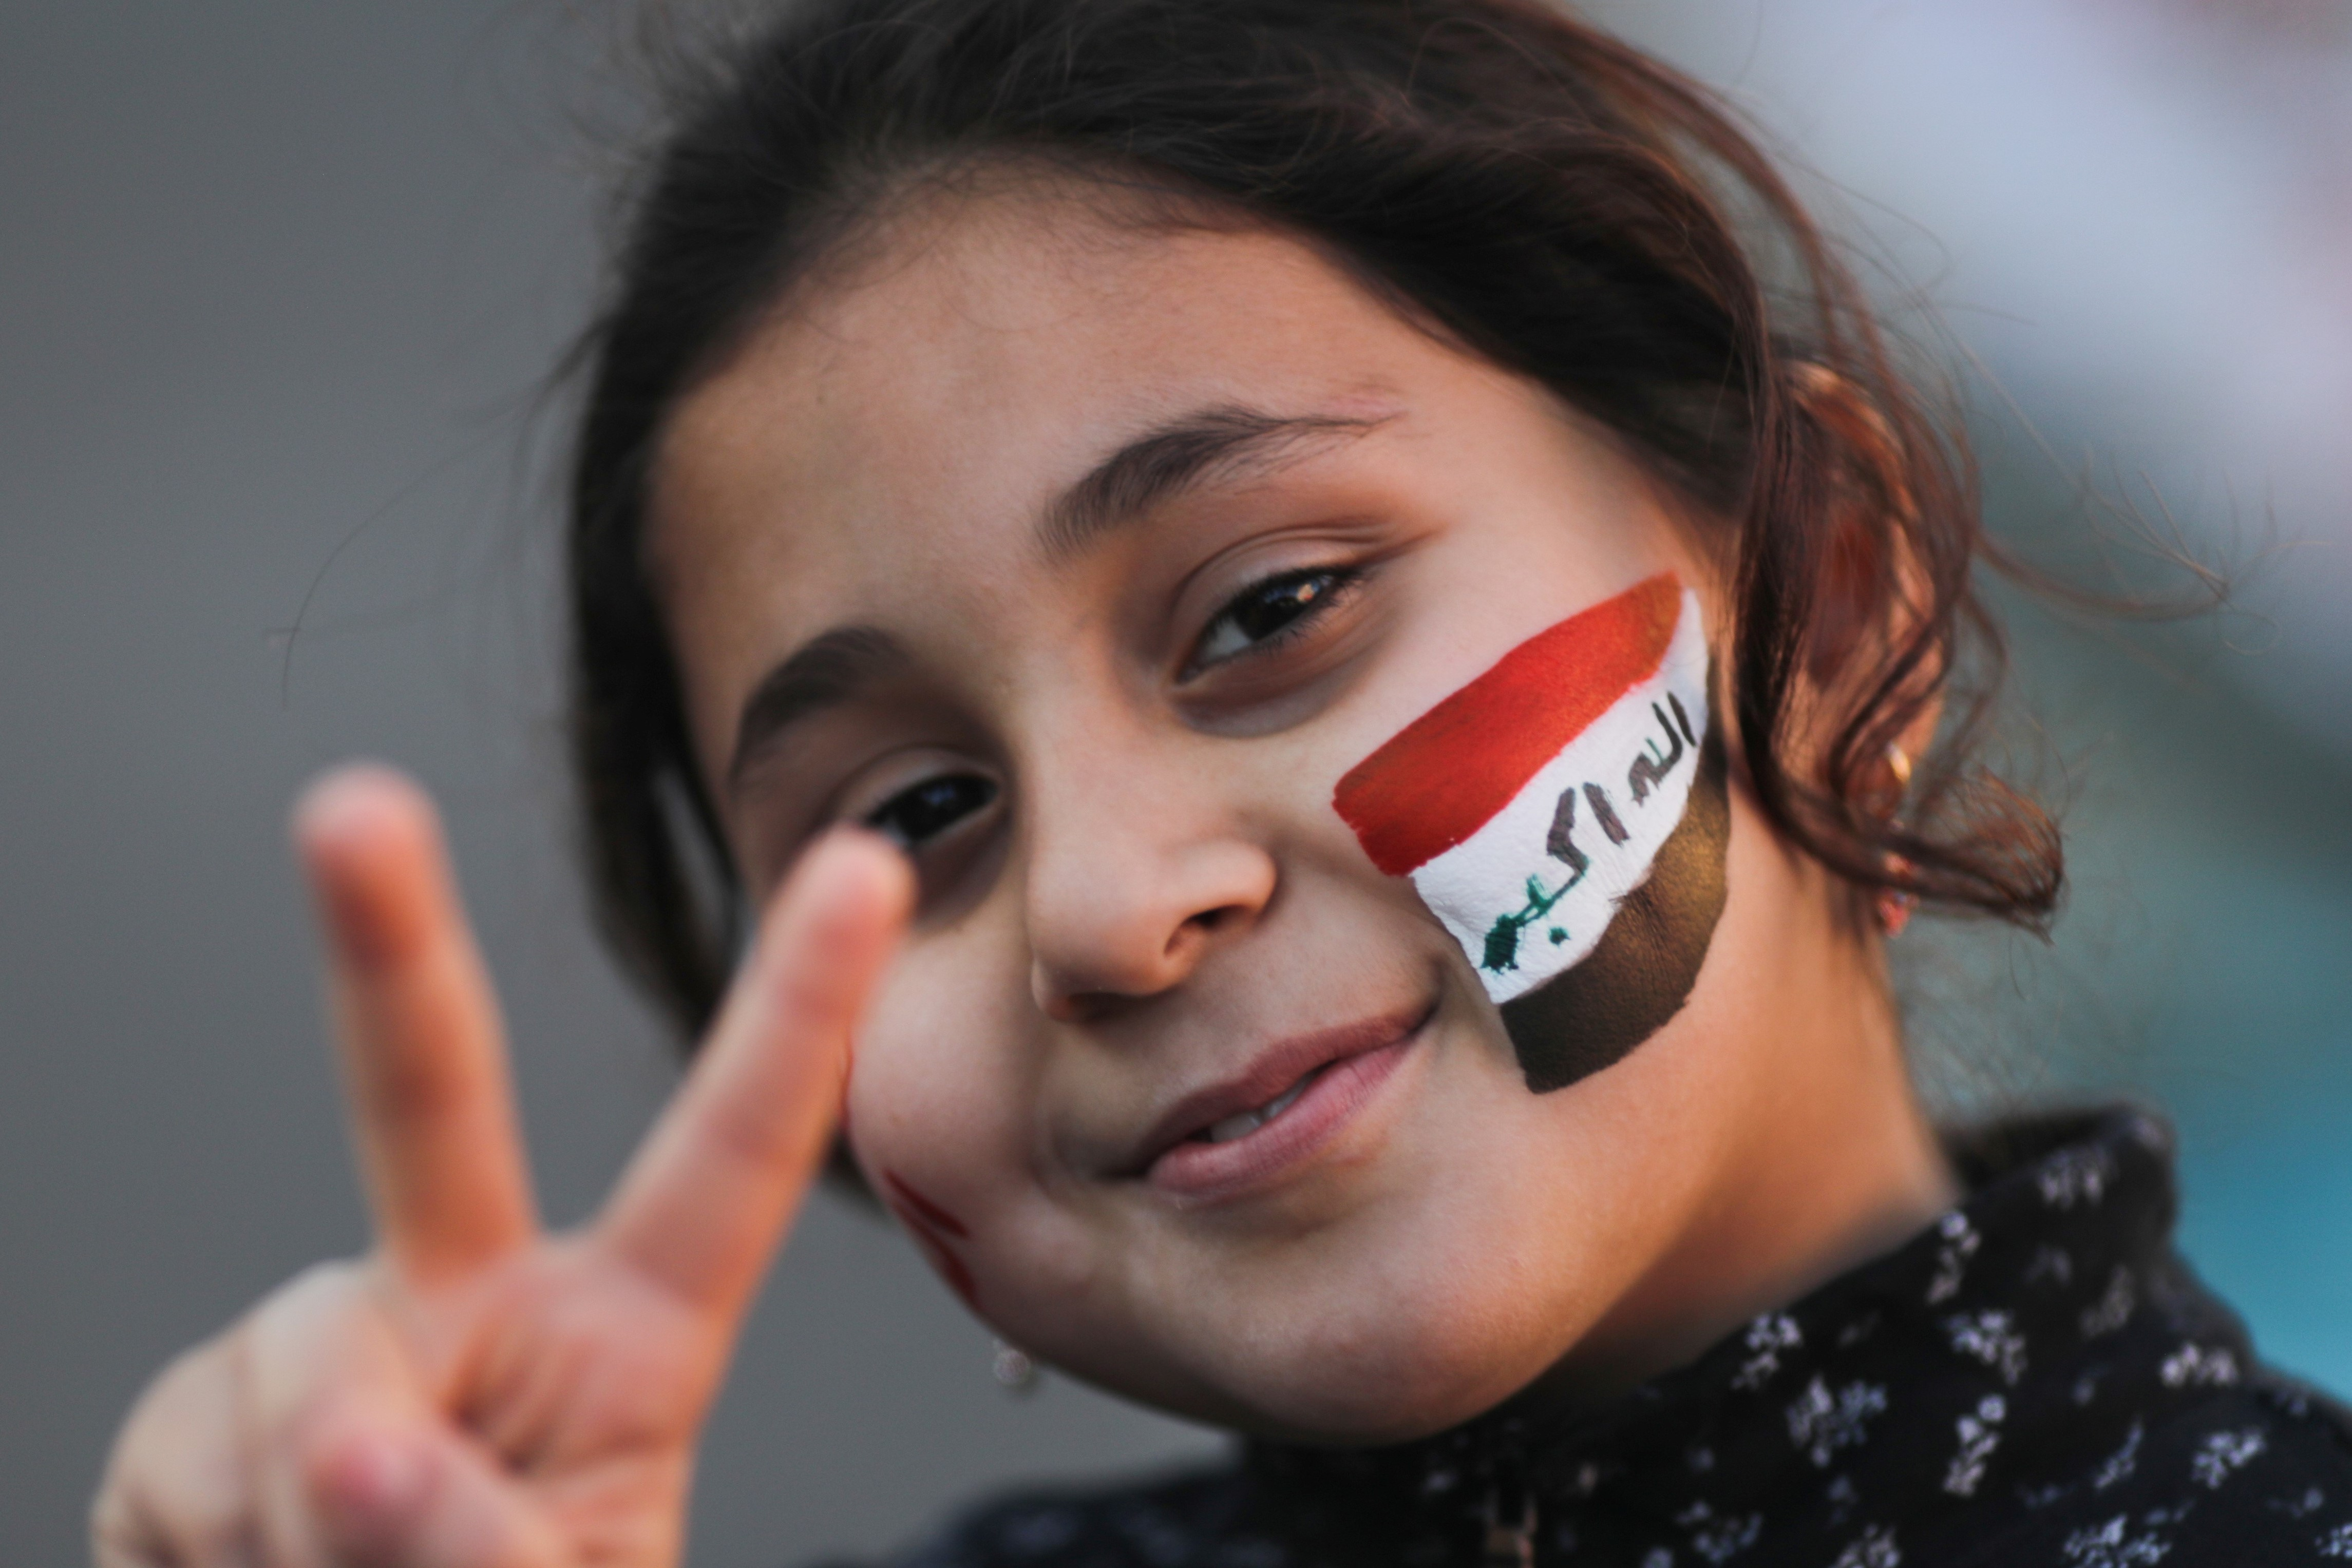 An Iraqi girl gestures during ongoing anti-government protests in Baghdad, Iraq December 20, 2019. REUTERS